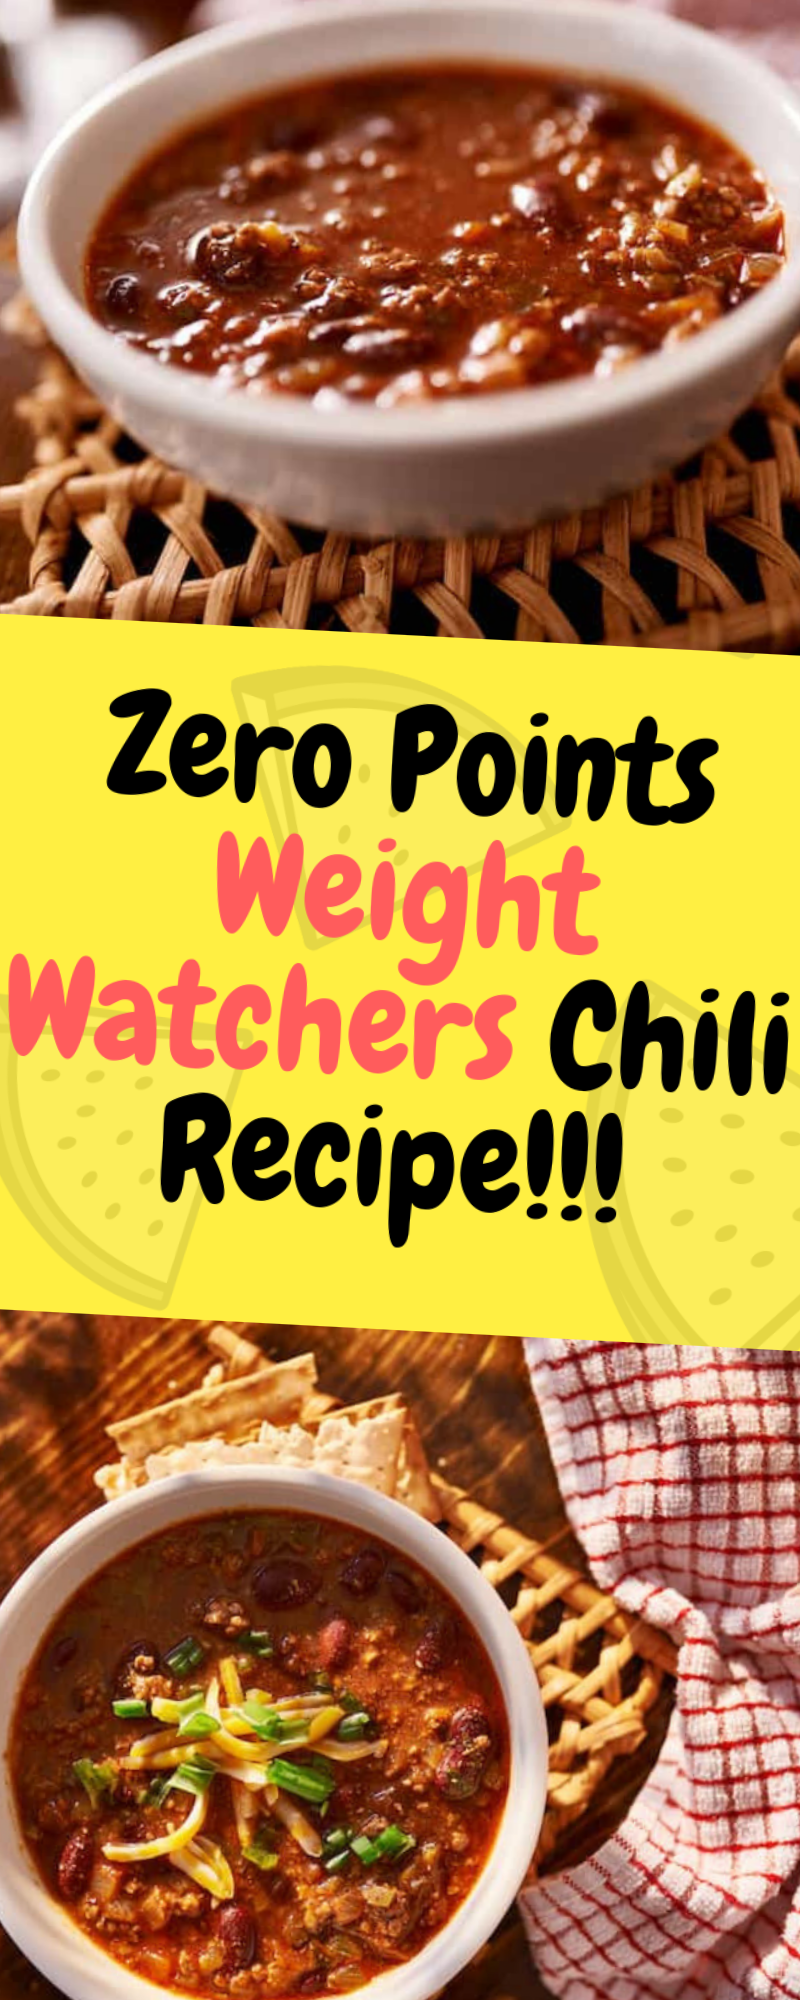 I'm so excited to share this Weight Watchers chili recipe. When I say that we eat this chili every single day, I'm not exaggerating. Ingredients Ground lean chicken or ground lean turkey – l lb (must be 99% free to... Continue Reading → #chilirecipe